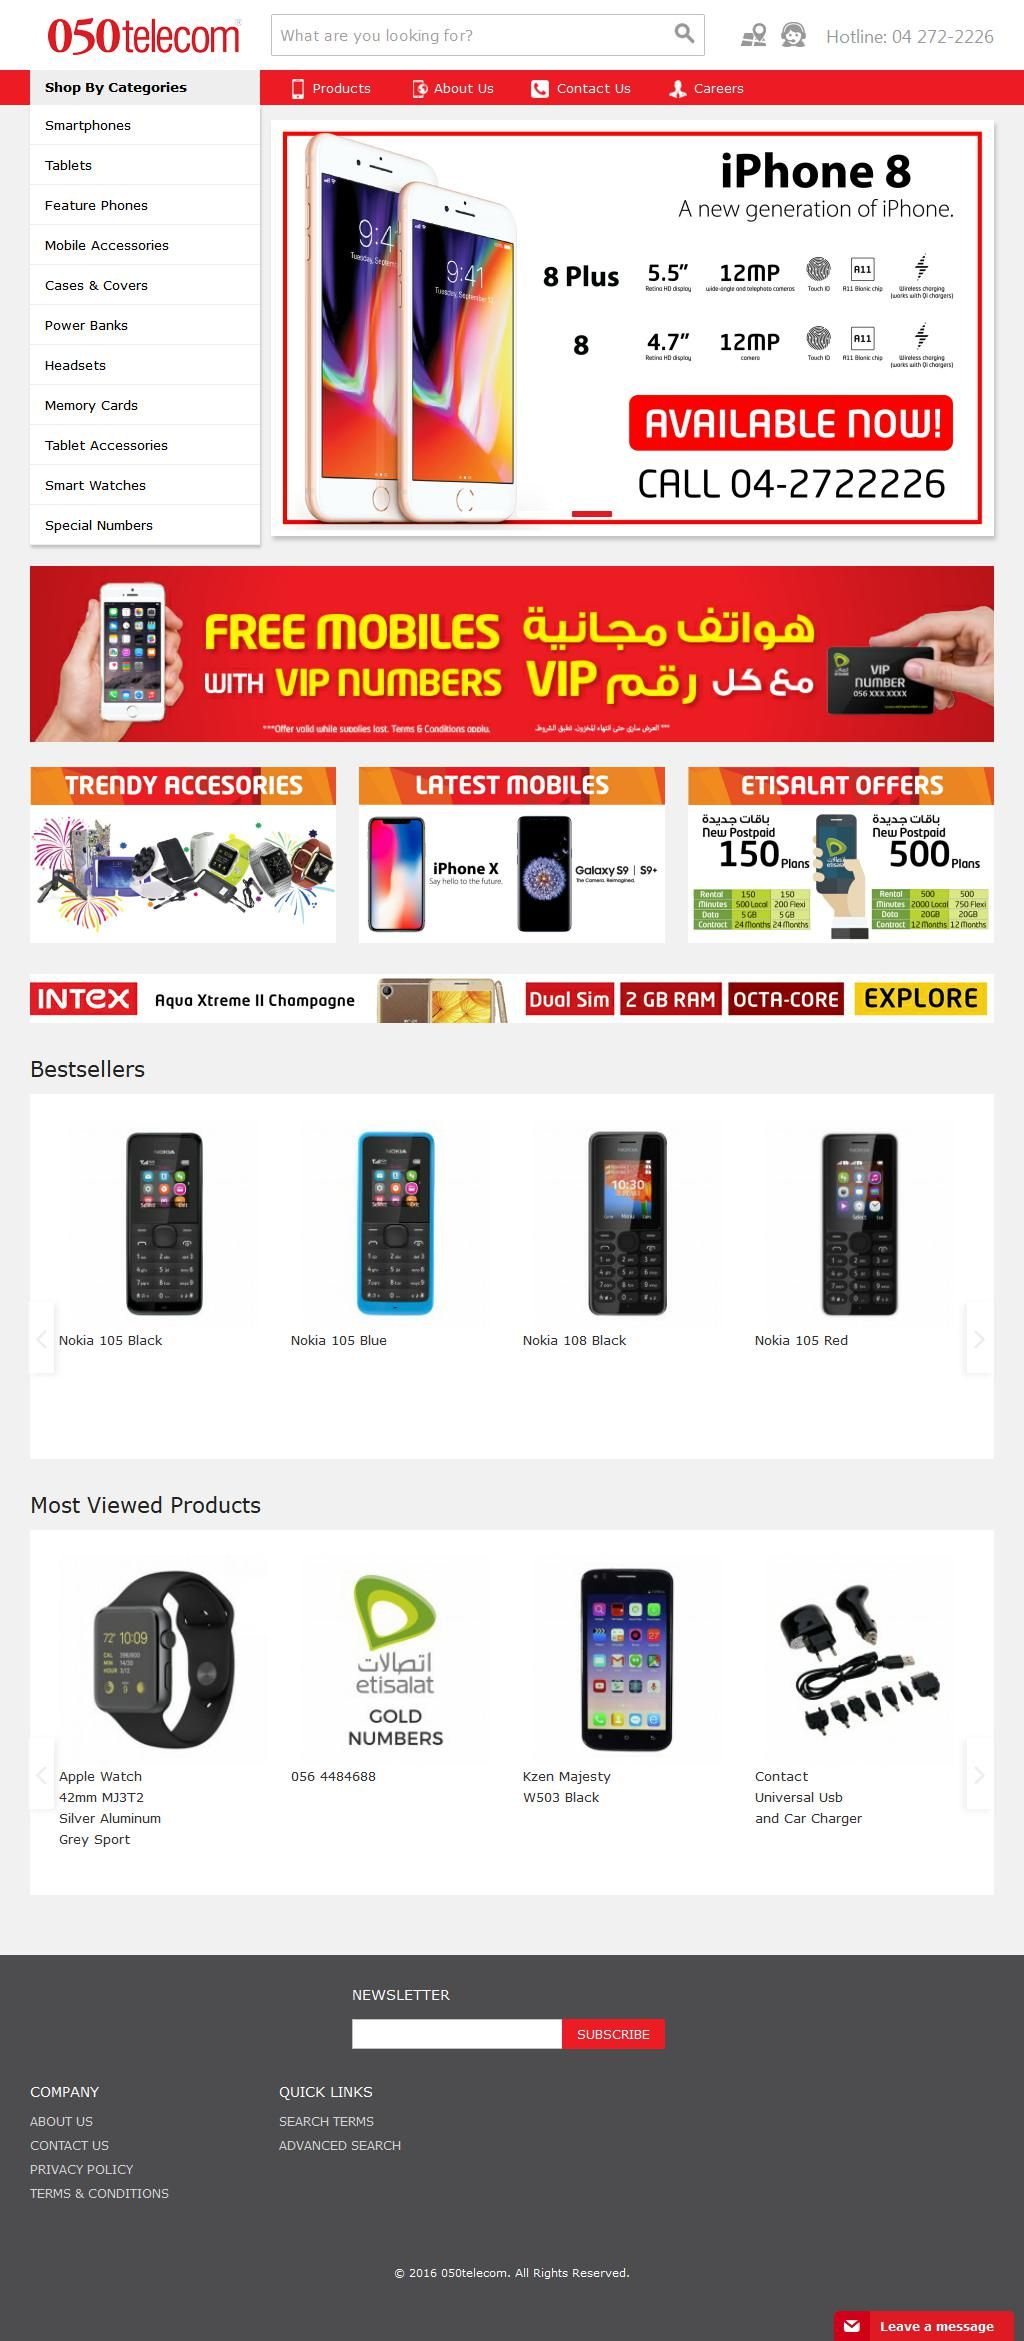 050 Telecom Mobile Phones And Accessories Shop Ibn Battuta